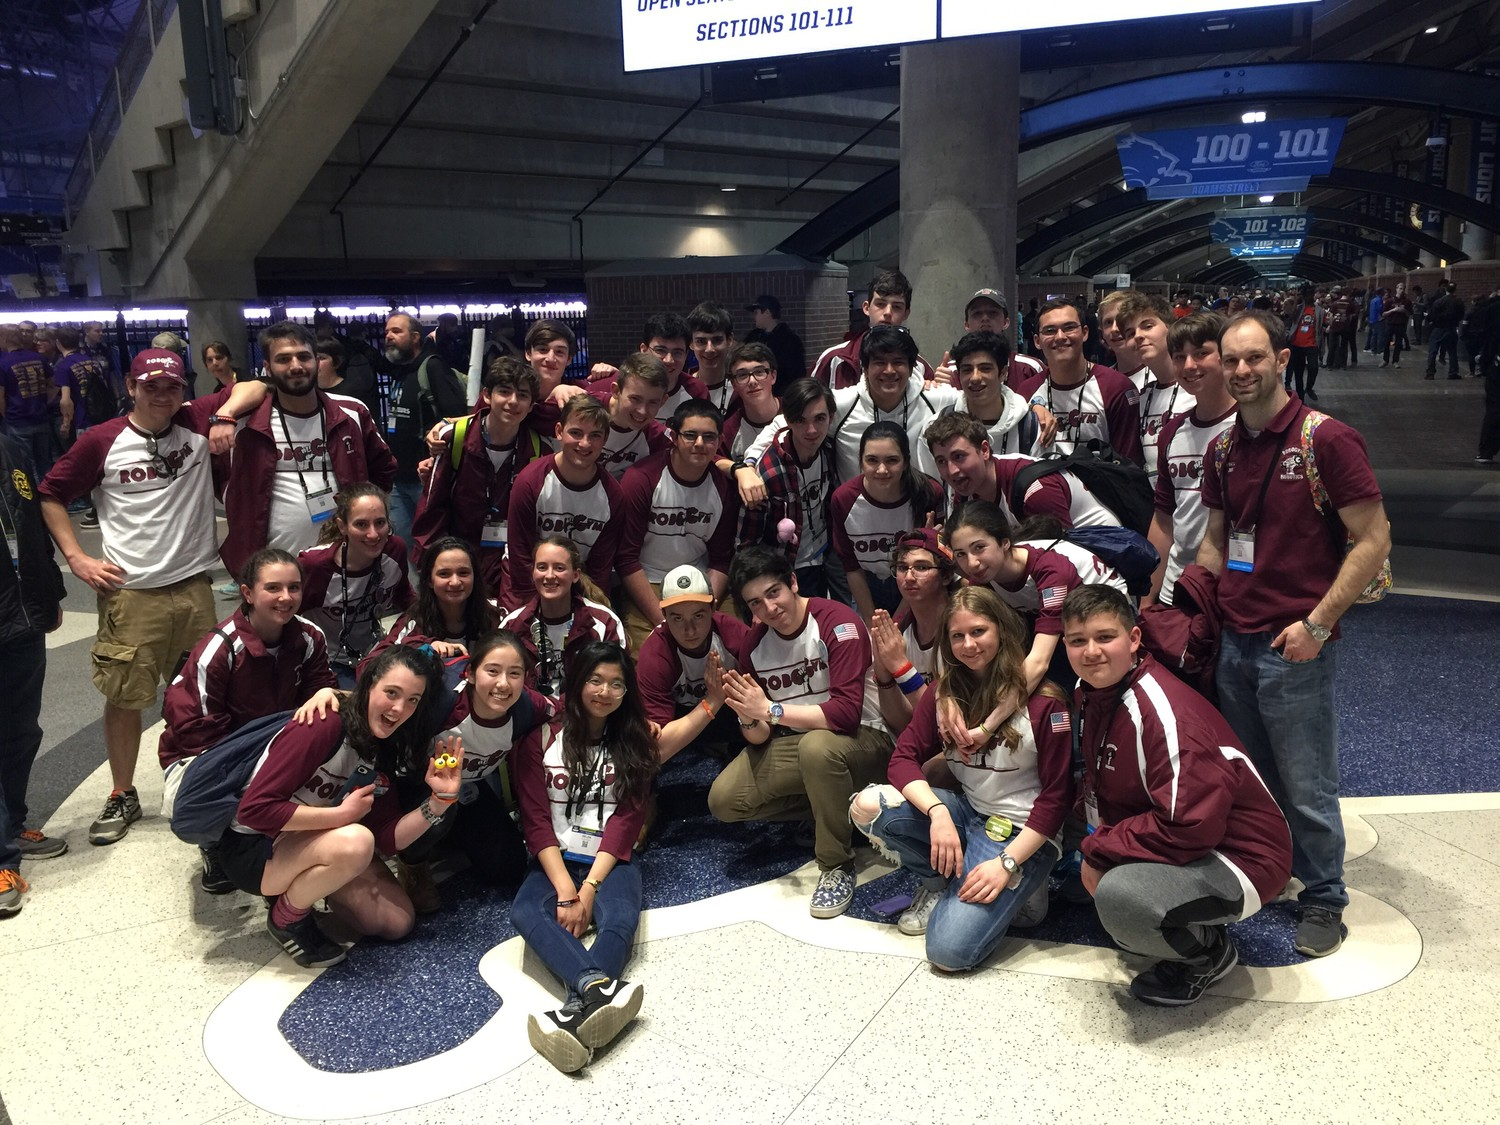 The RoboGym Robotics team from North Shore High School traveled to Detroit to compete in the FIRST Robotics Competition National Championships.